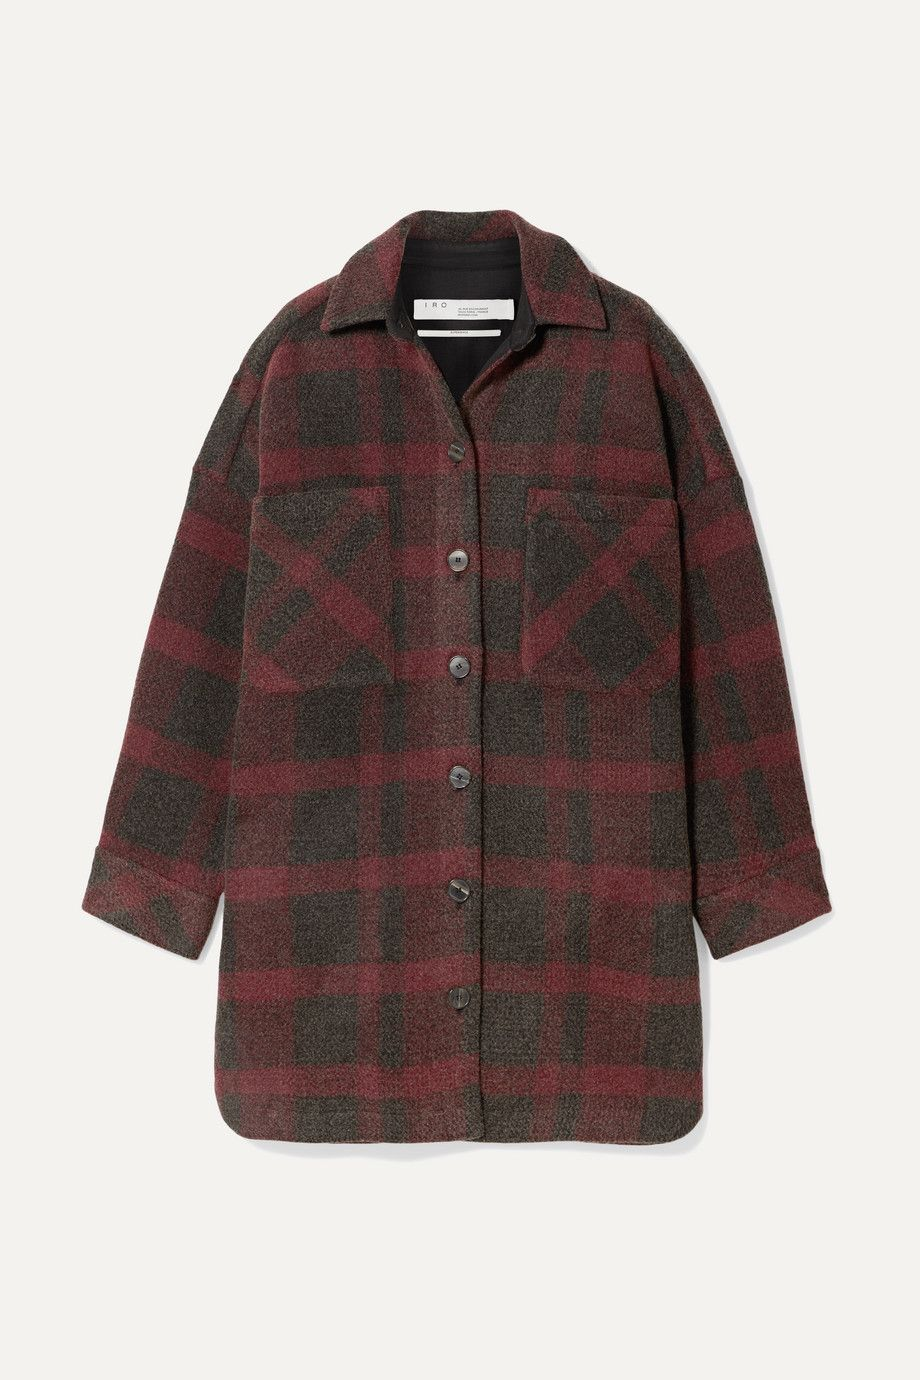 iro-zunky-oversized-checked-flannel-jacket-net-a-porter-sale